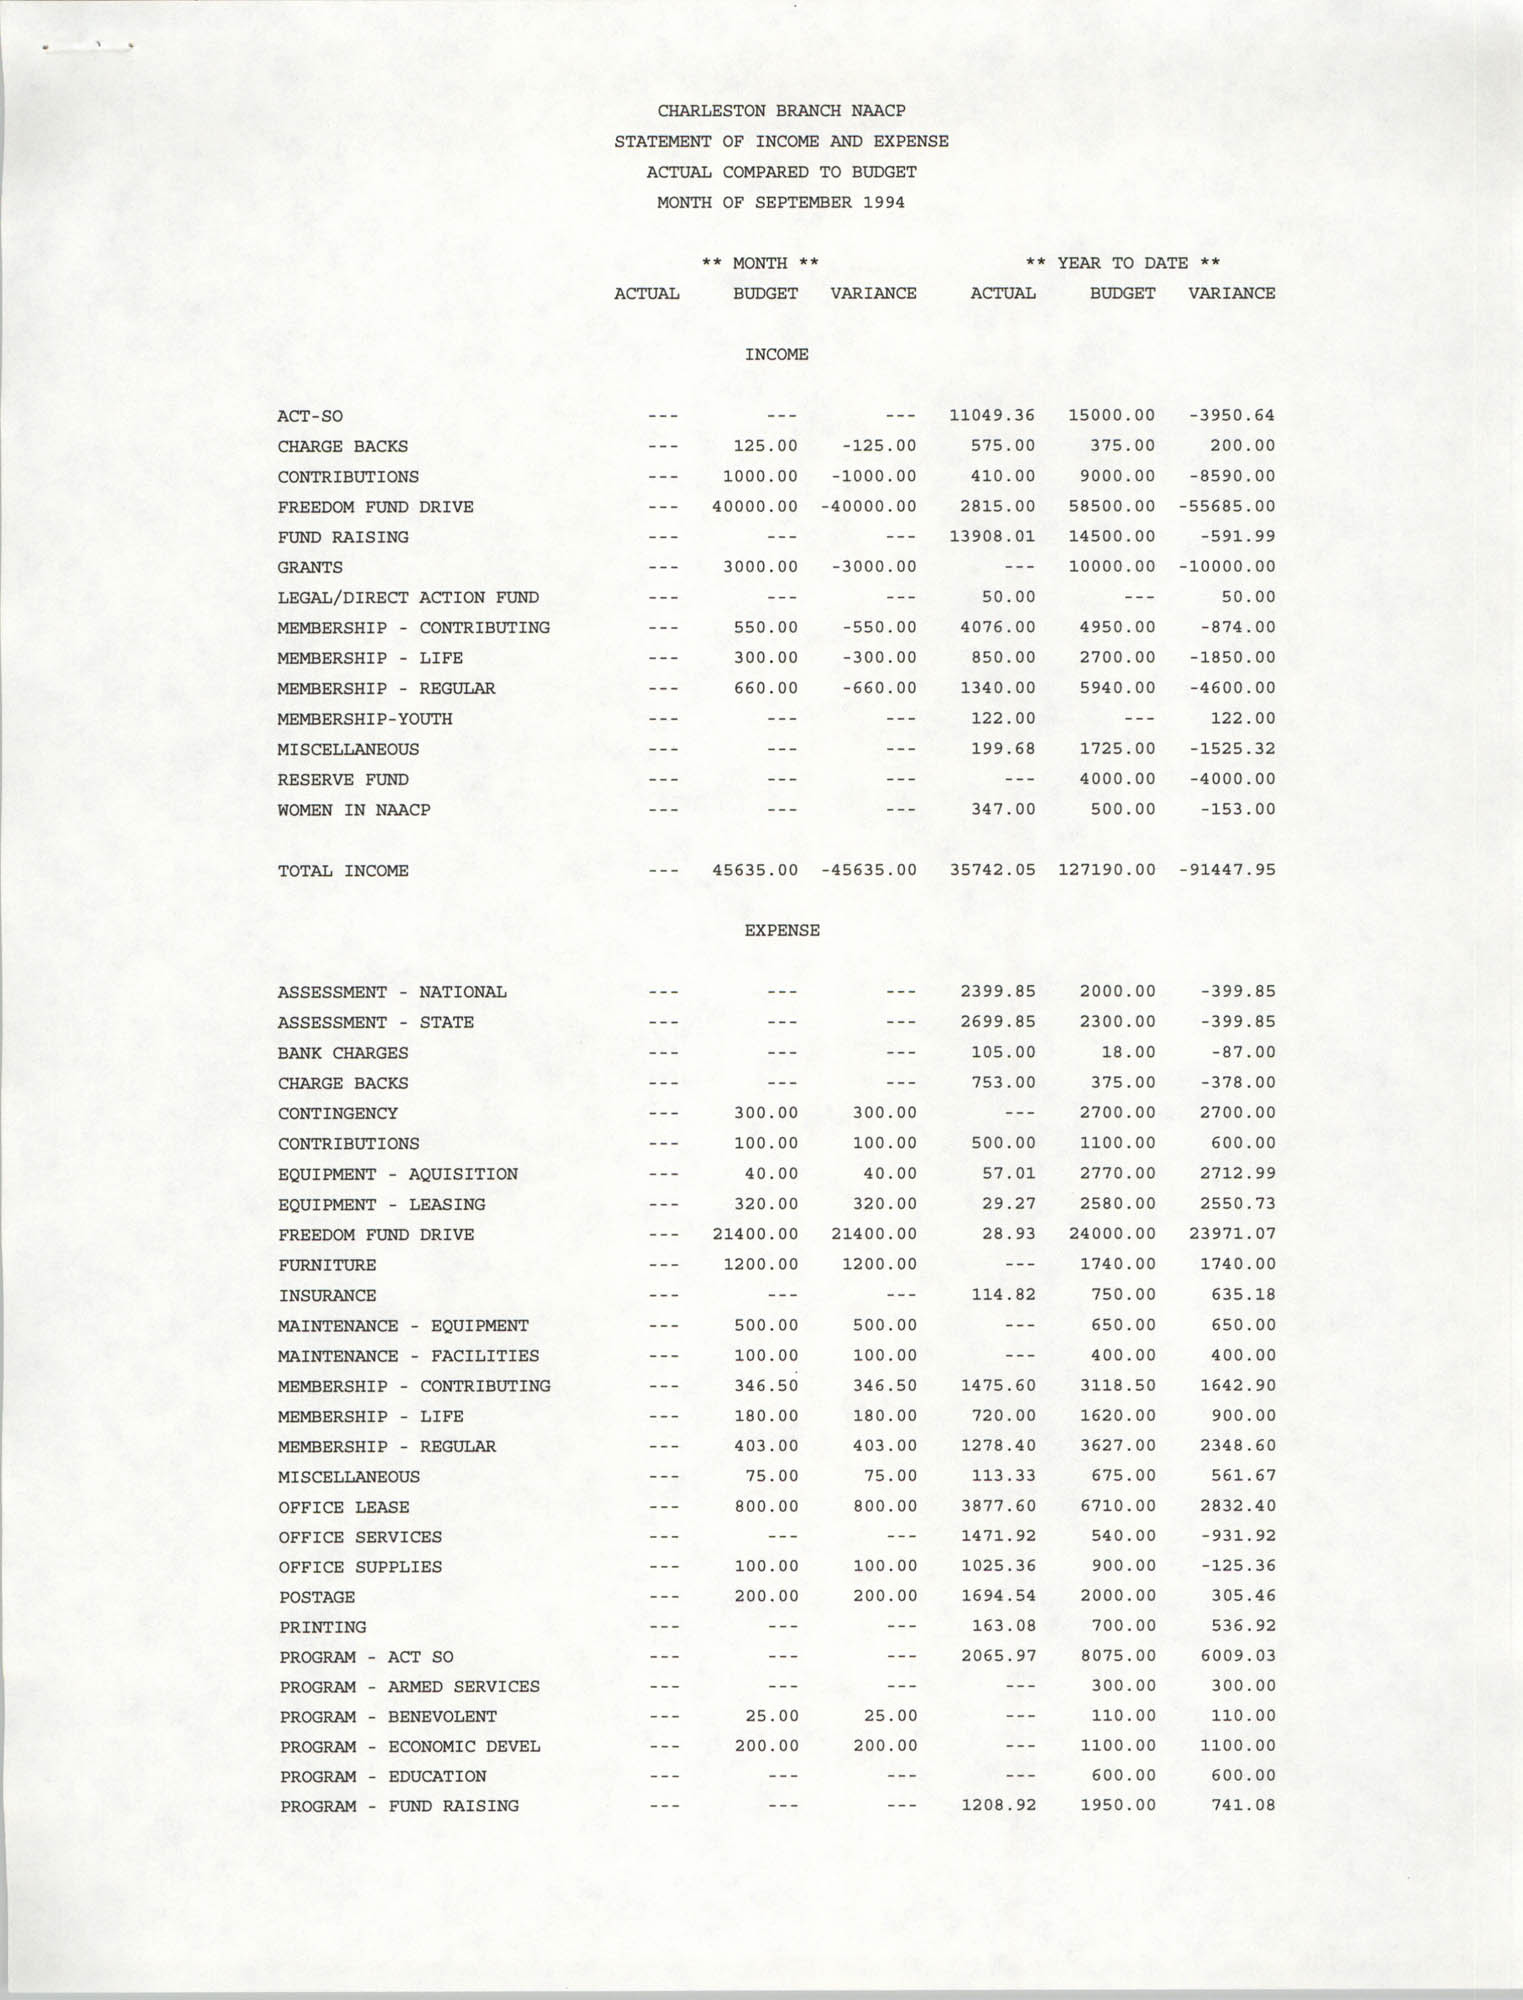 Charleston Branch of the NAACP Statement of Financial Position, September 1994